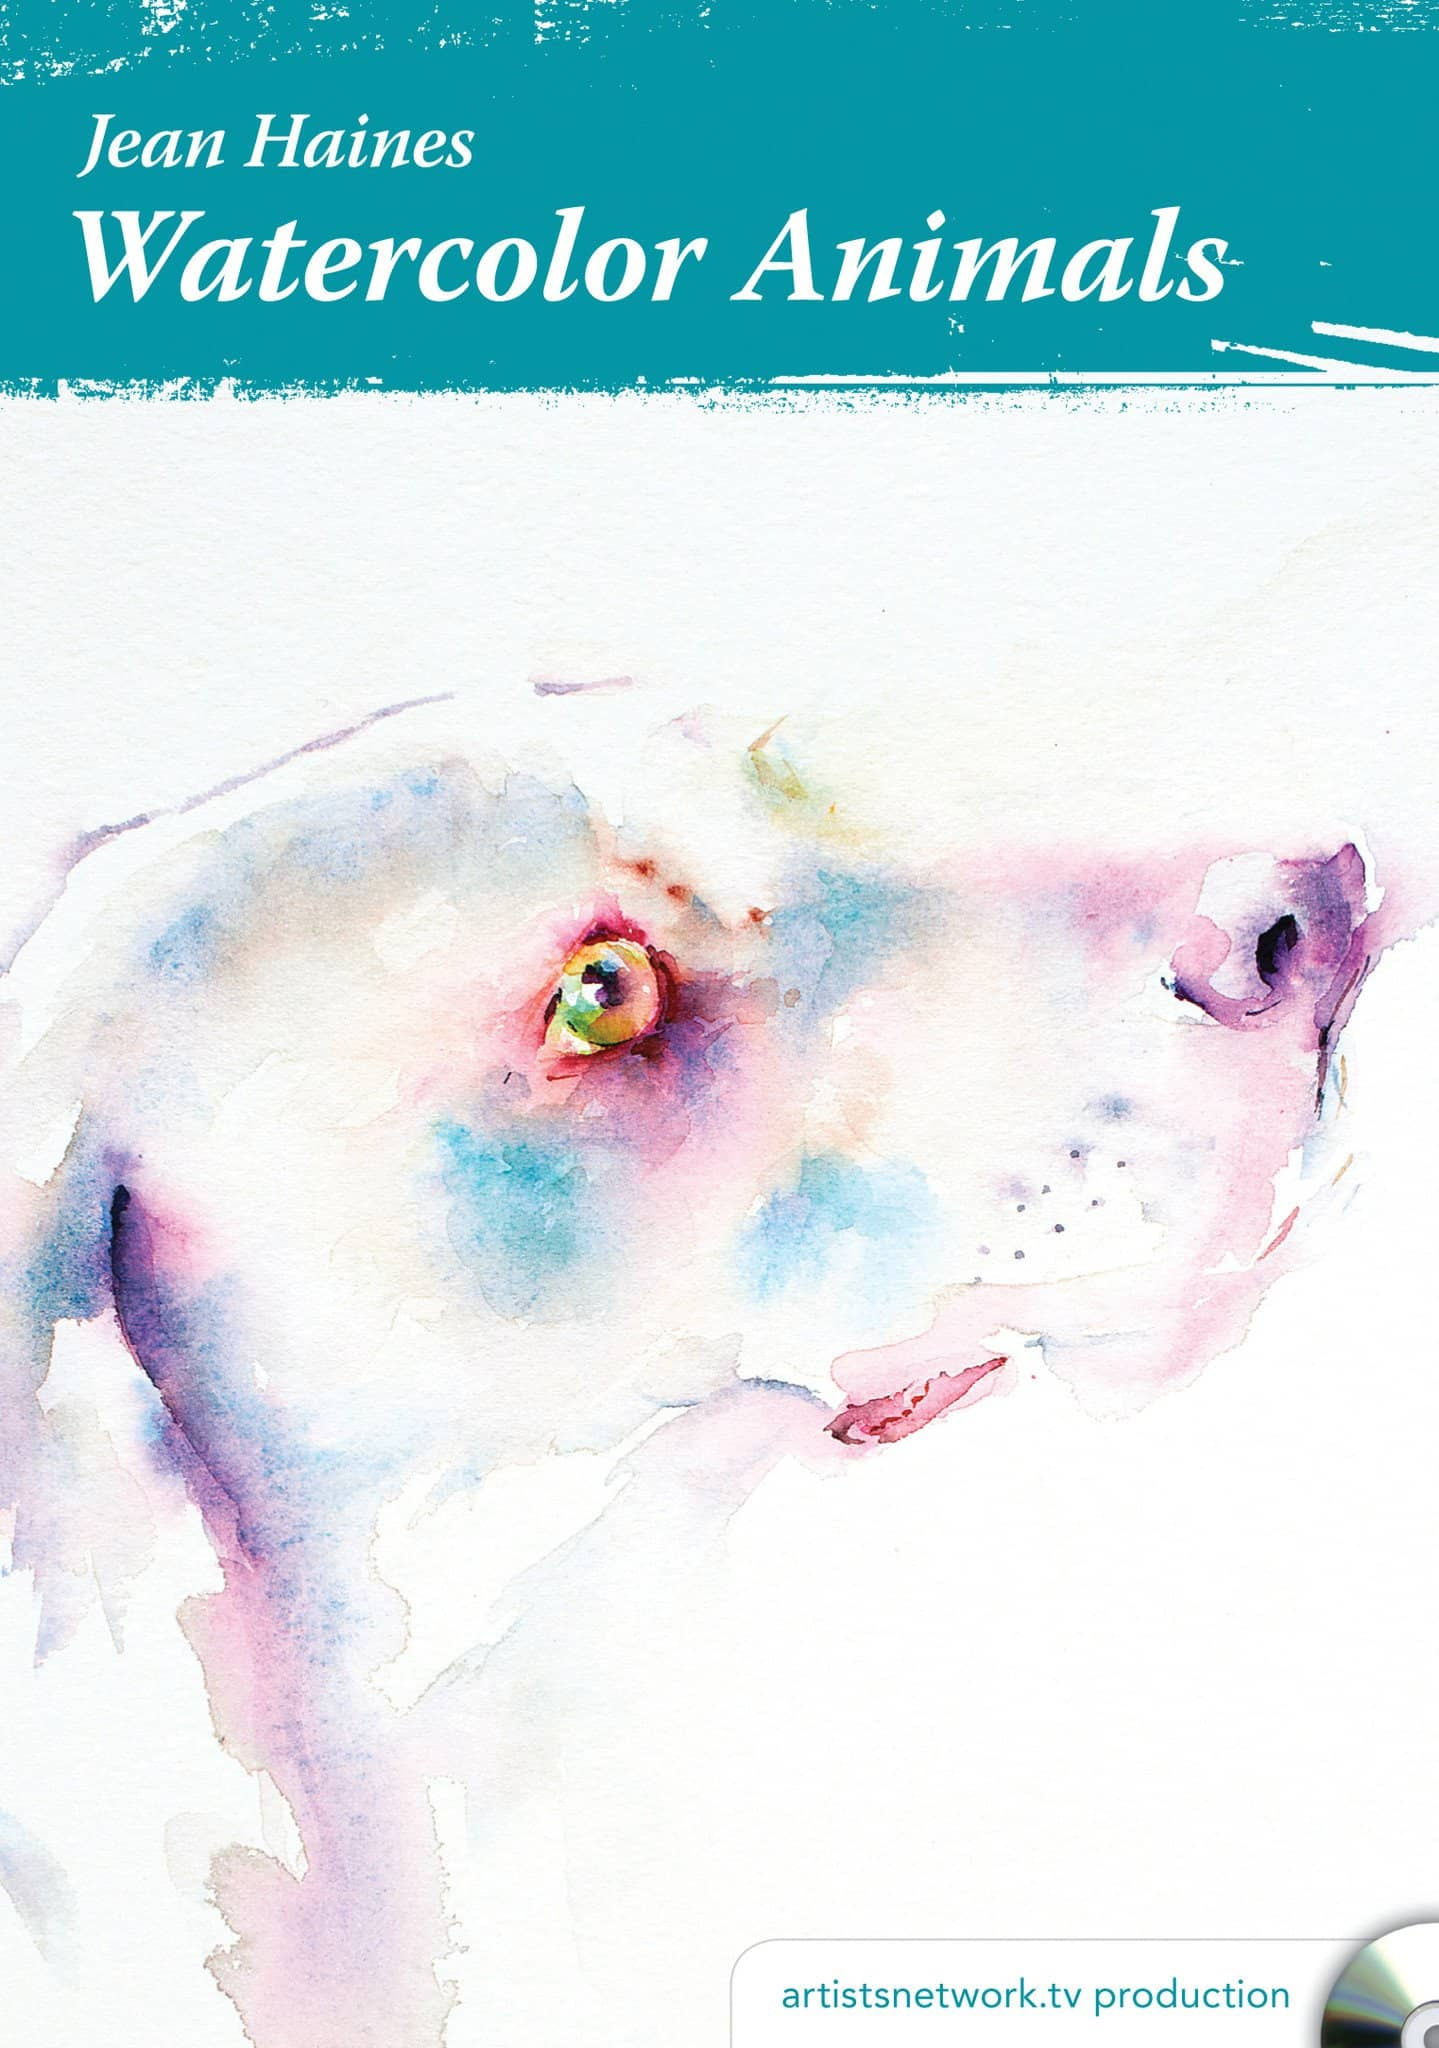 Watercolor Animals with Jean Haines